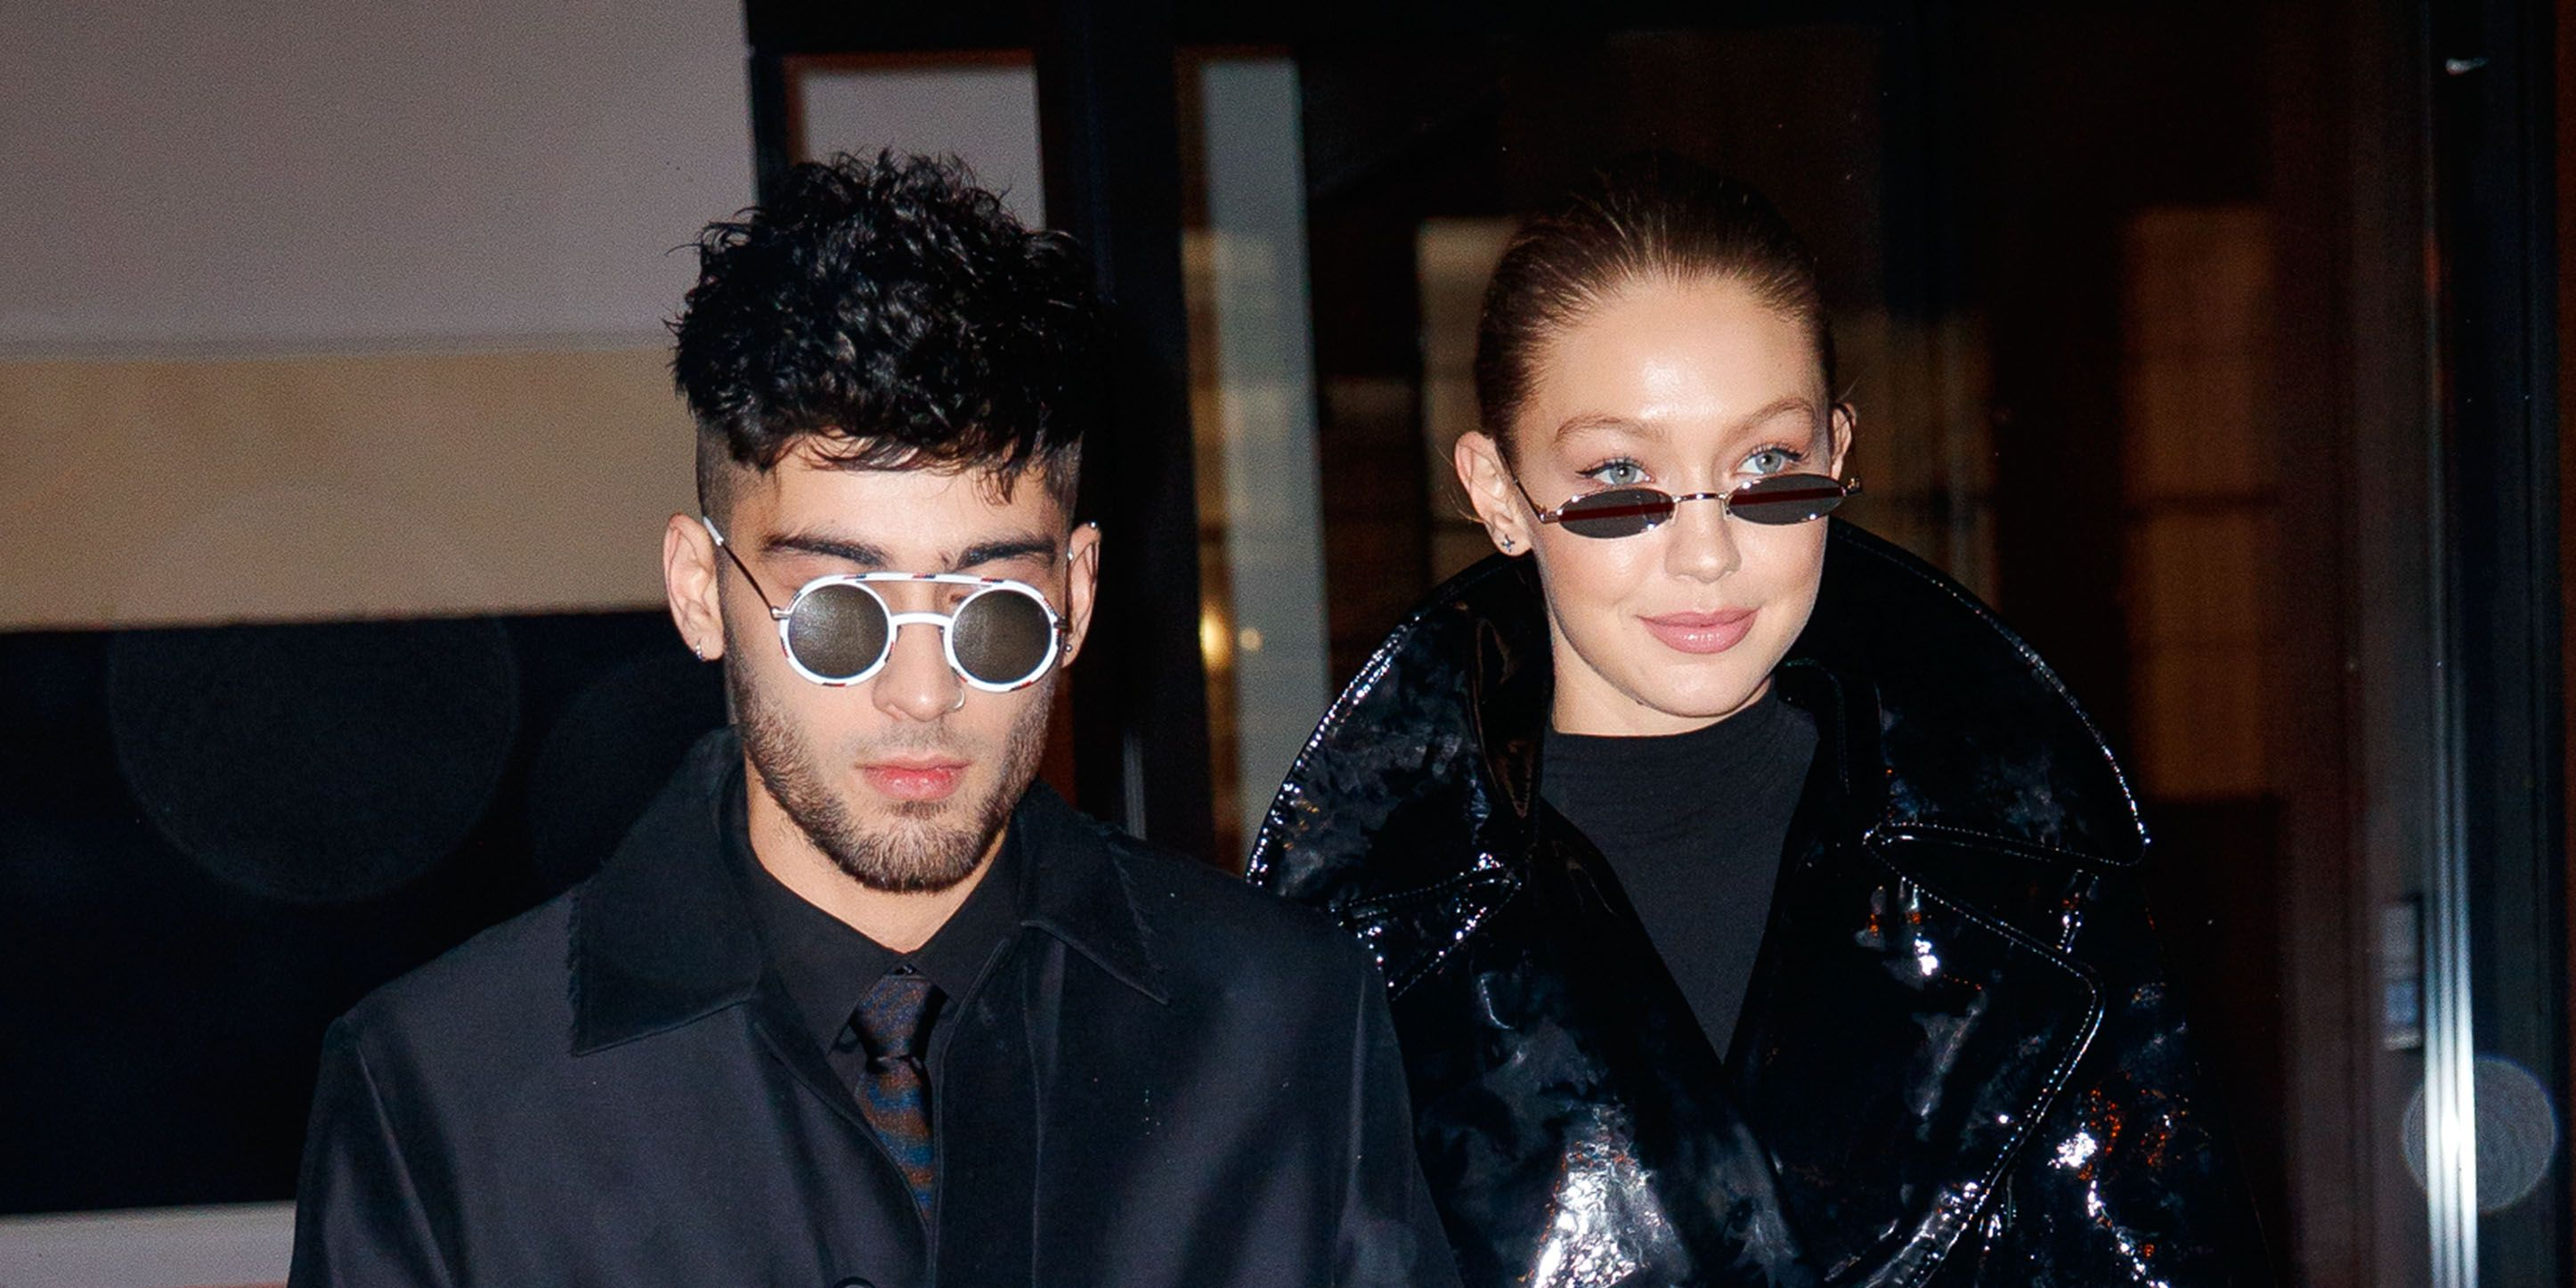 Gigi Hadid's mum on whether she'll marry Zayn Malik any time soon